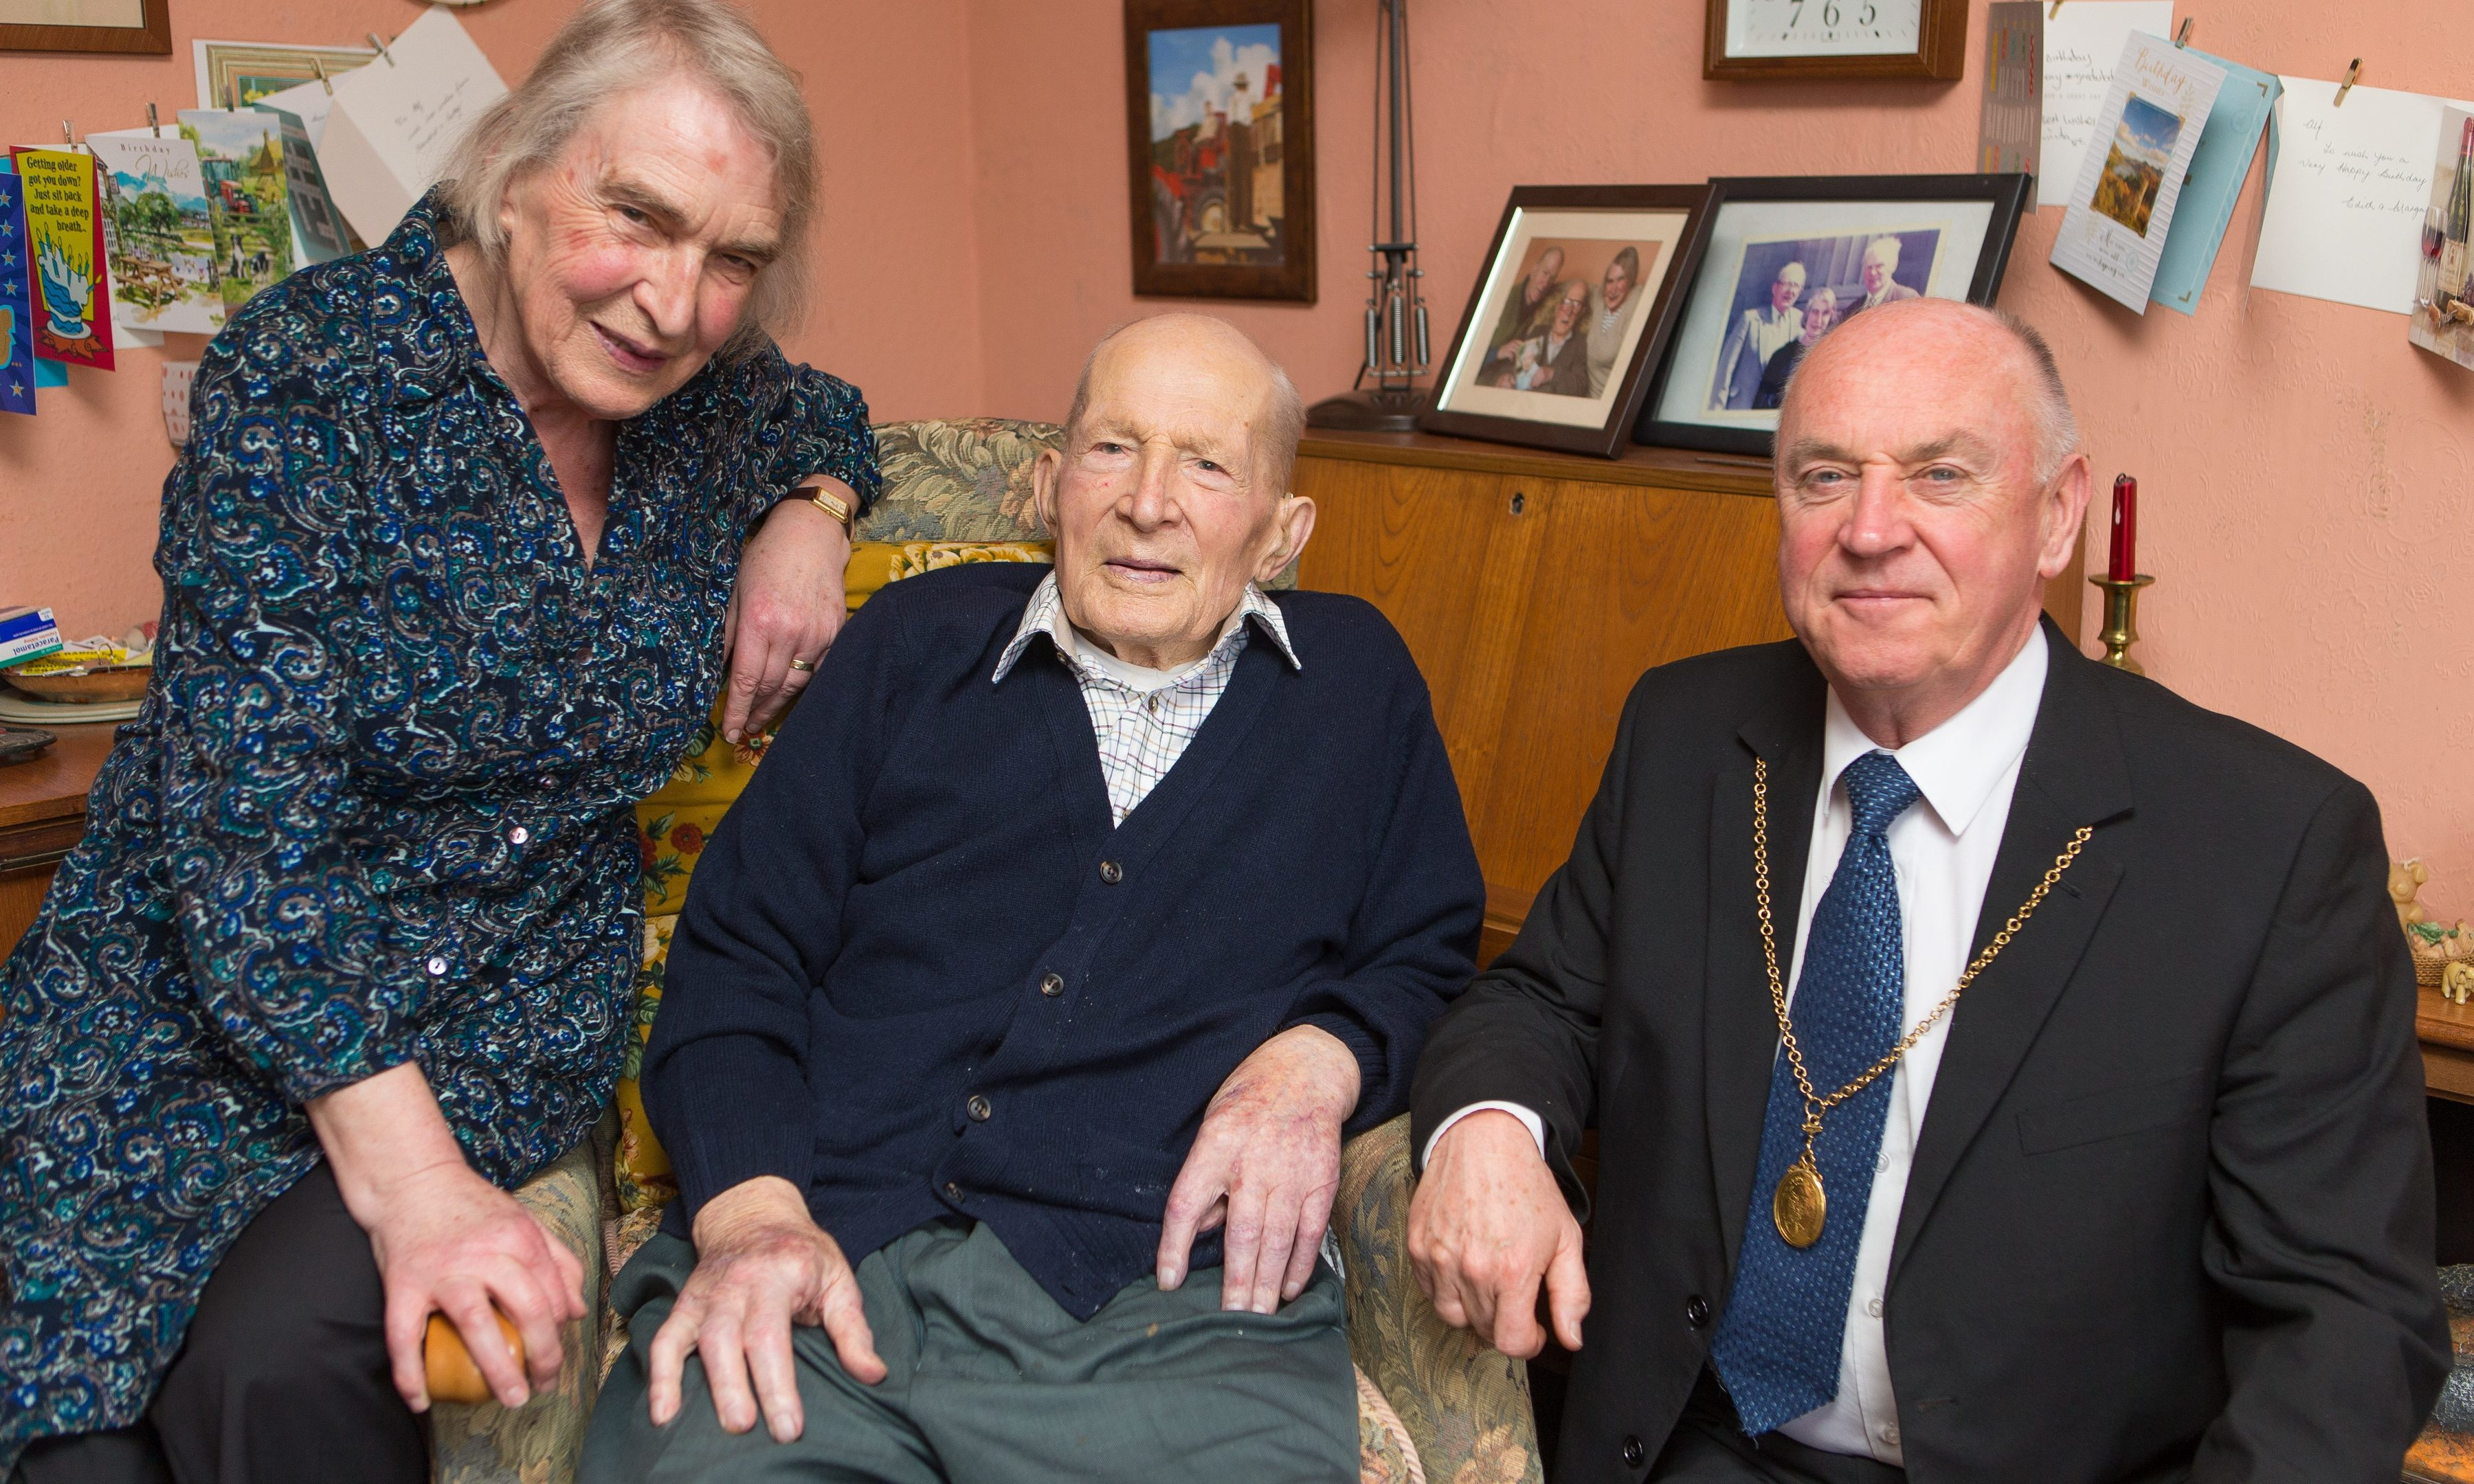 Mr Smith with daughter Irene Noble and Councillor Mac Roberts.